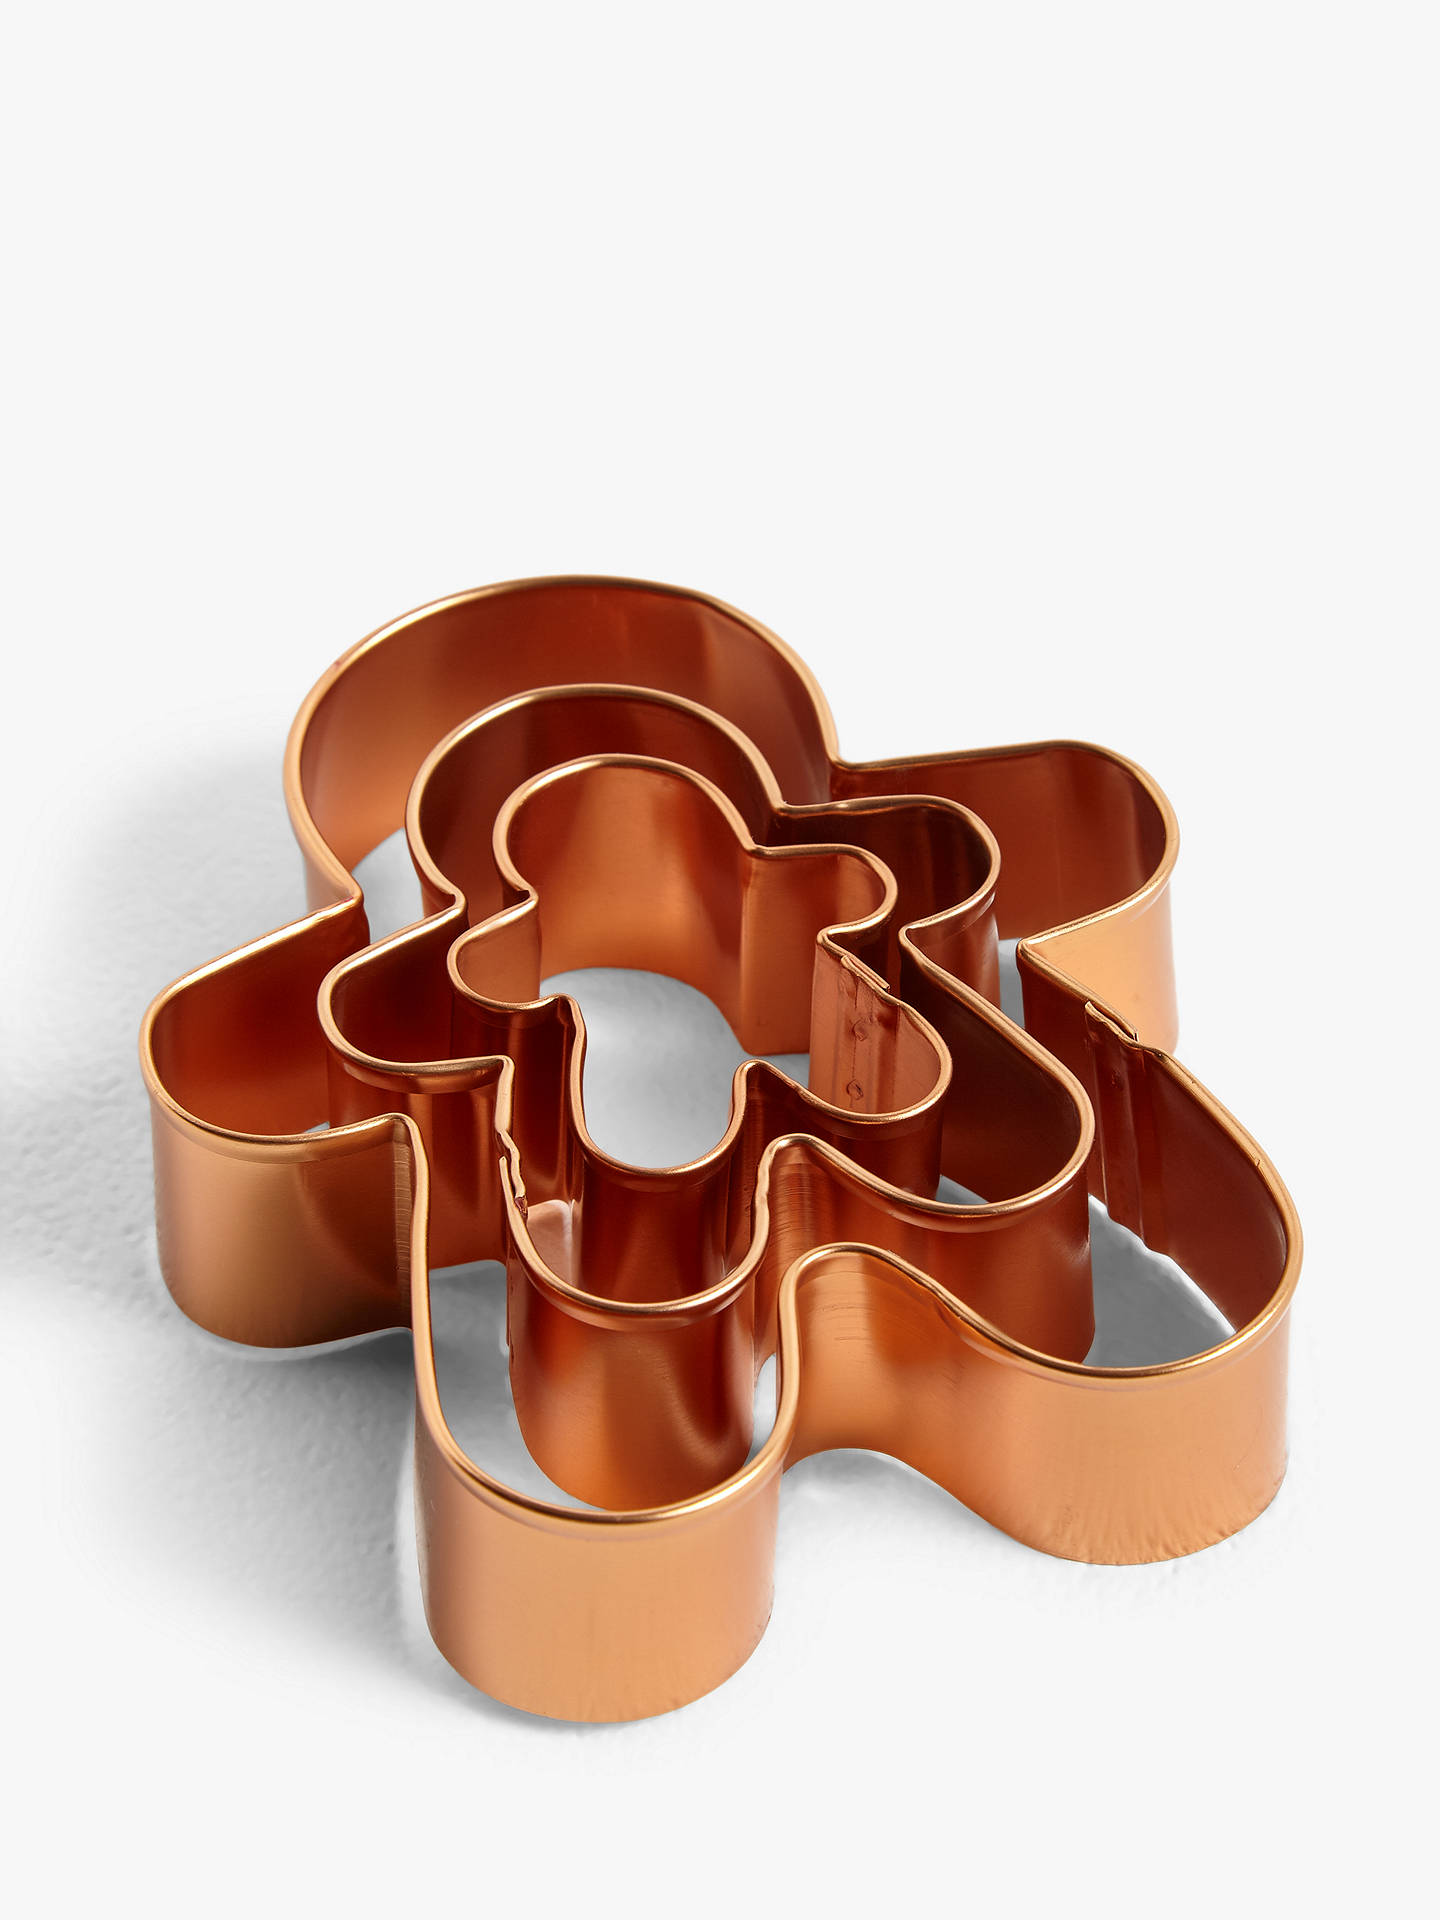 Buy John Lewis & Partners Gingerbread Man Nesting Cookie Cutters, Set of 3, Copper Online at johnlewis.com